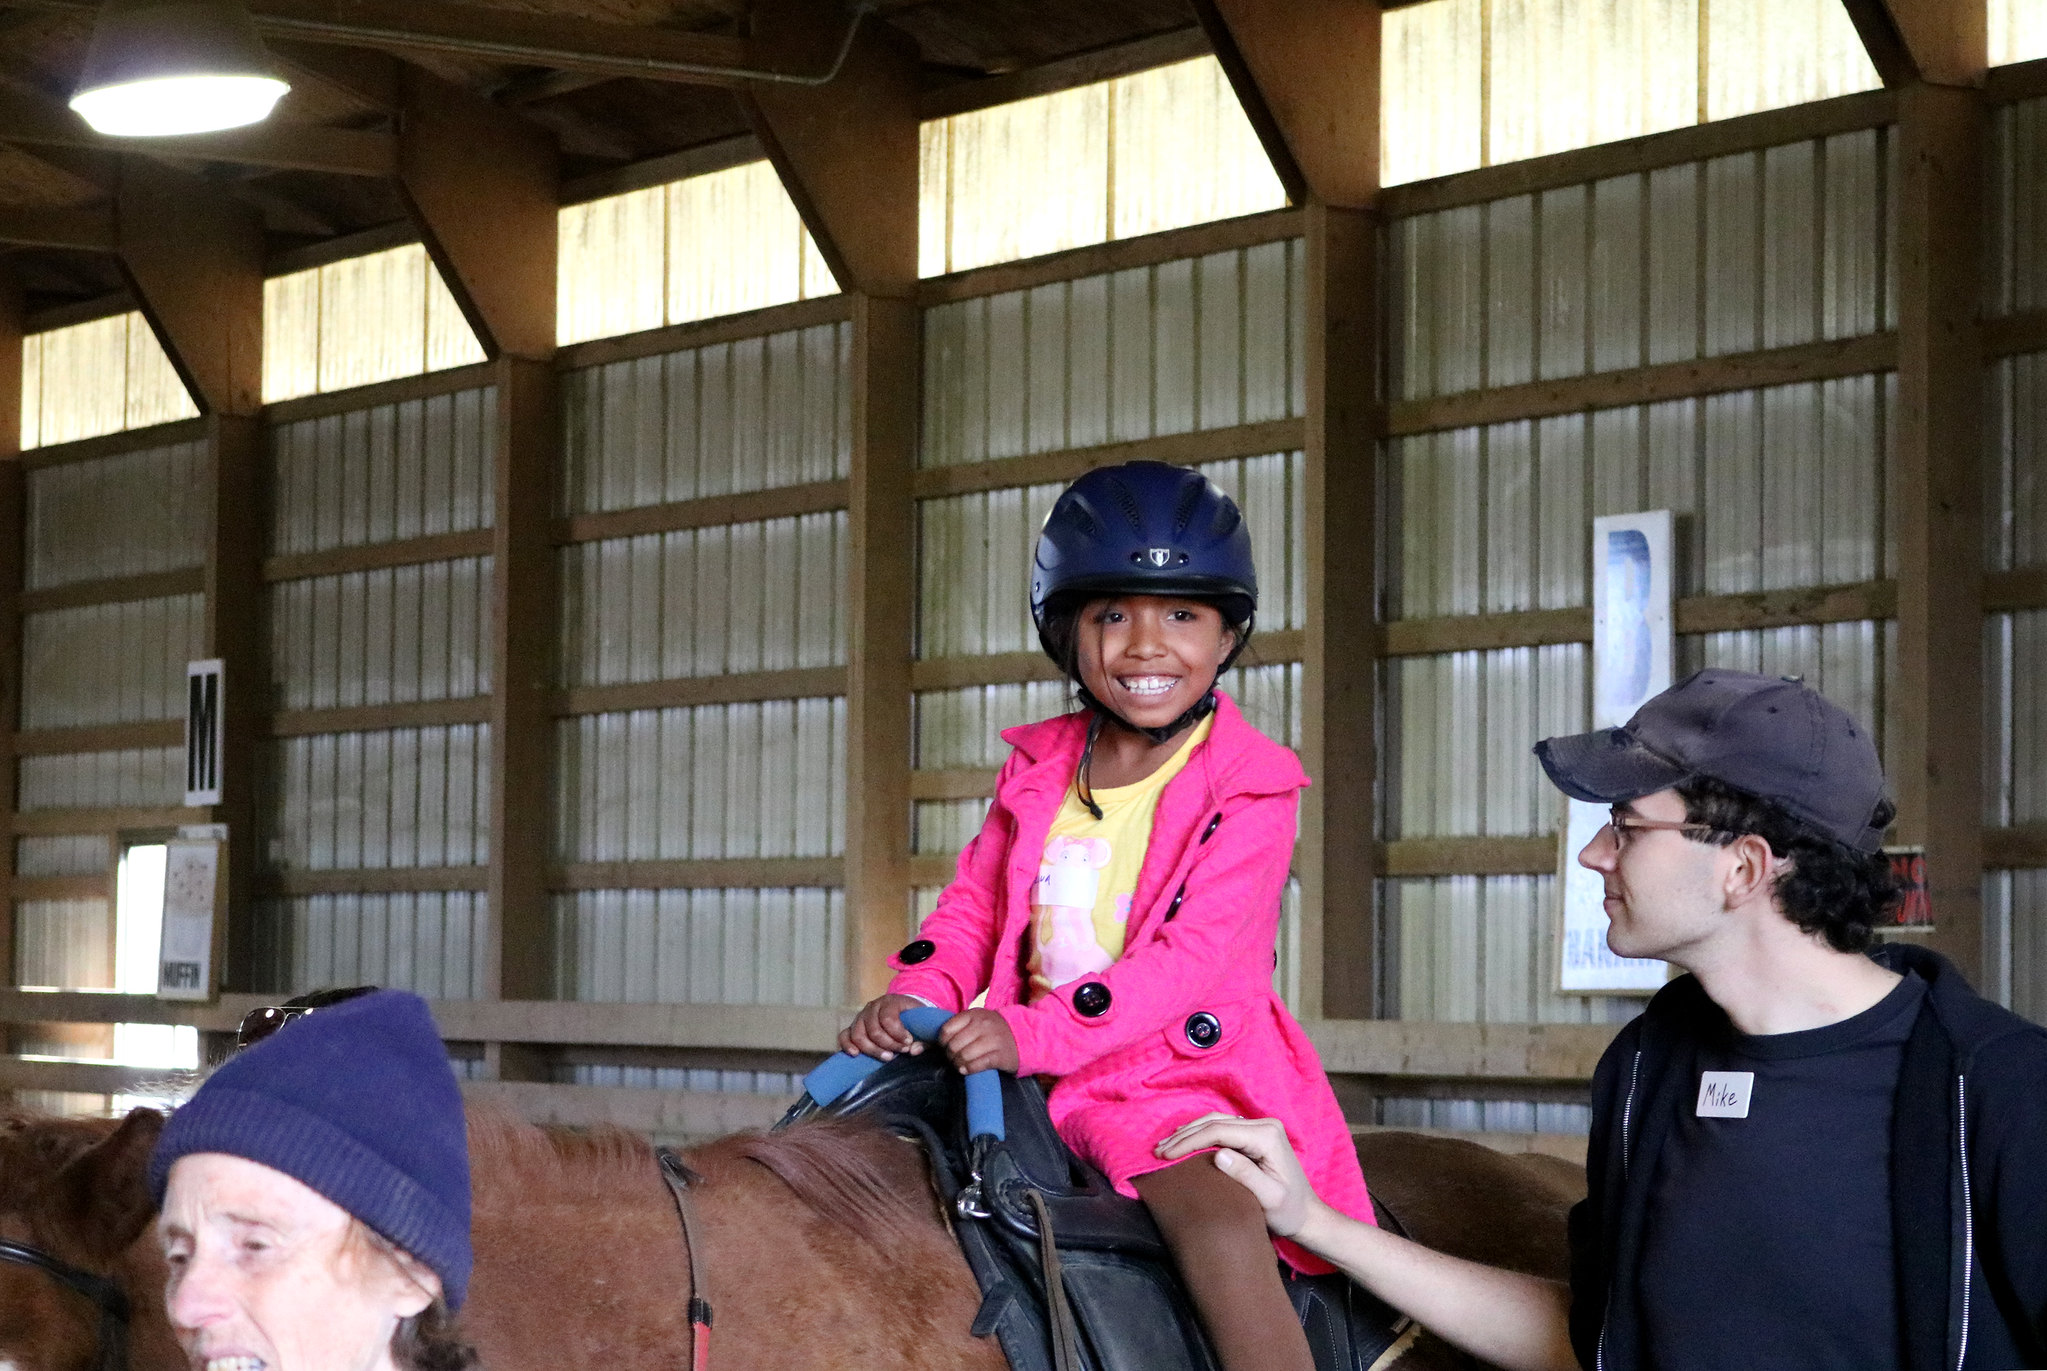 Inn resident Melva enjoys therapeutic horseback riding